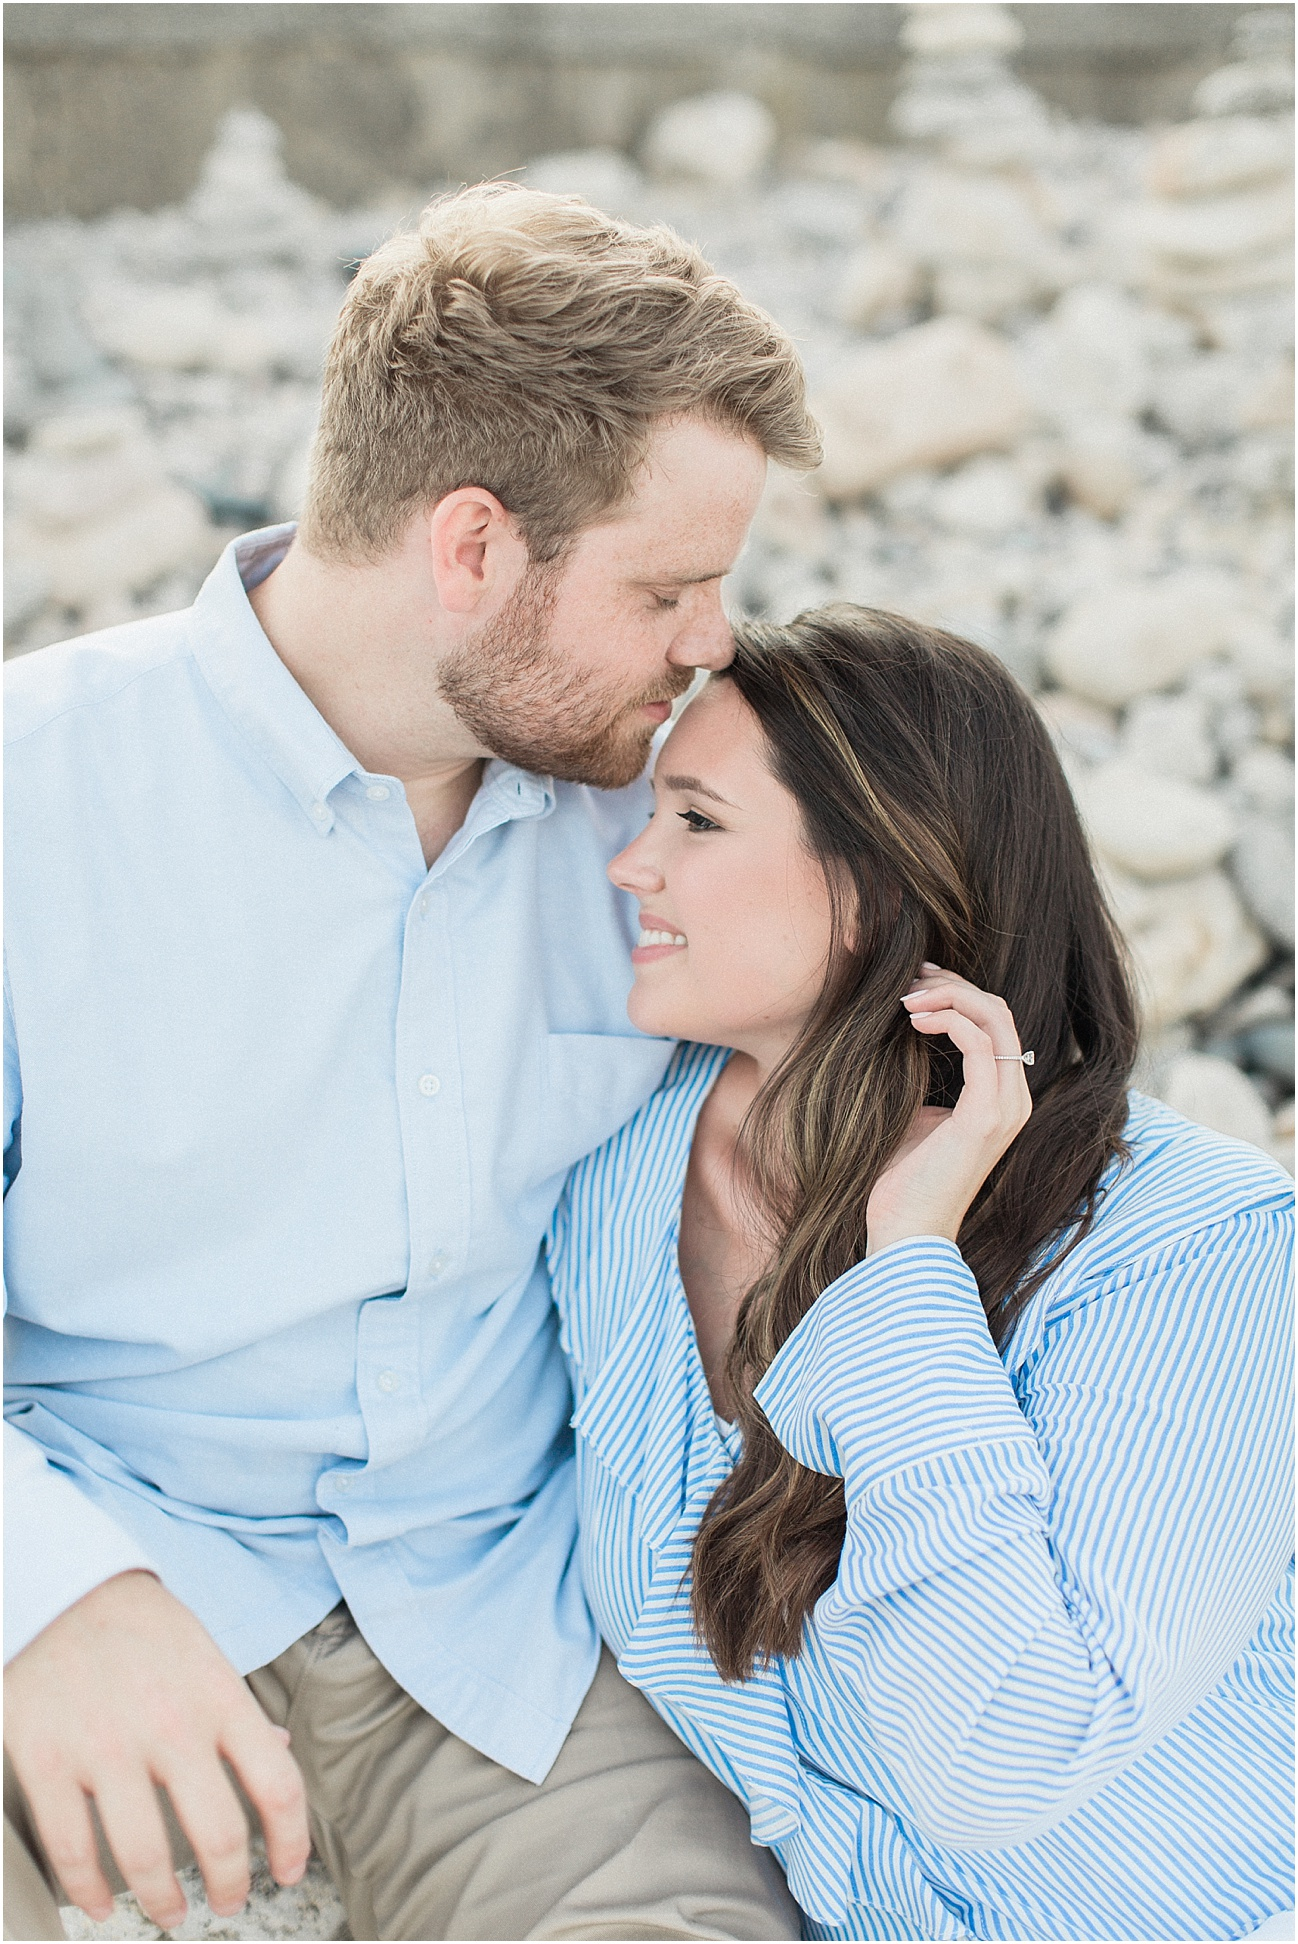 heather_chris_narragansett_beer_cliff_walk_beach_rhode_island_ri_cape_cod_boston_wedding_photographer_meredith_jane_photography_photo_0742.jpg